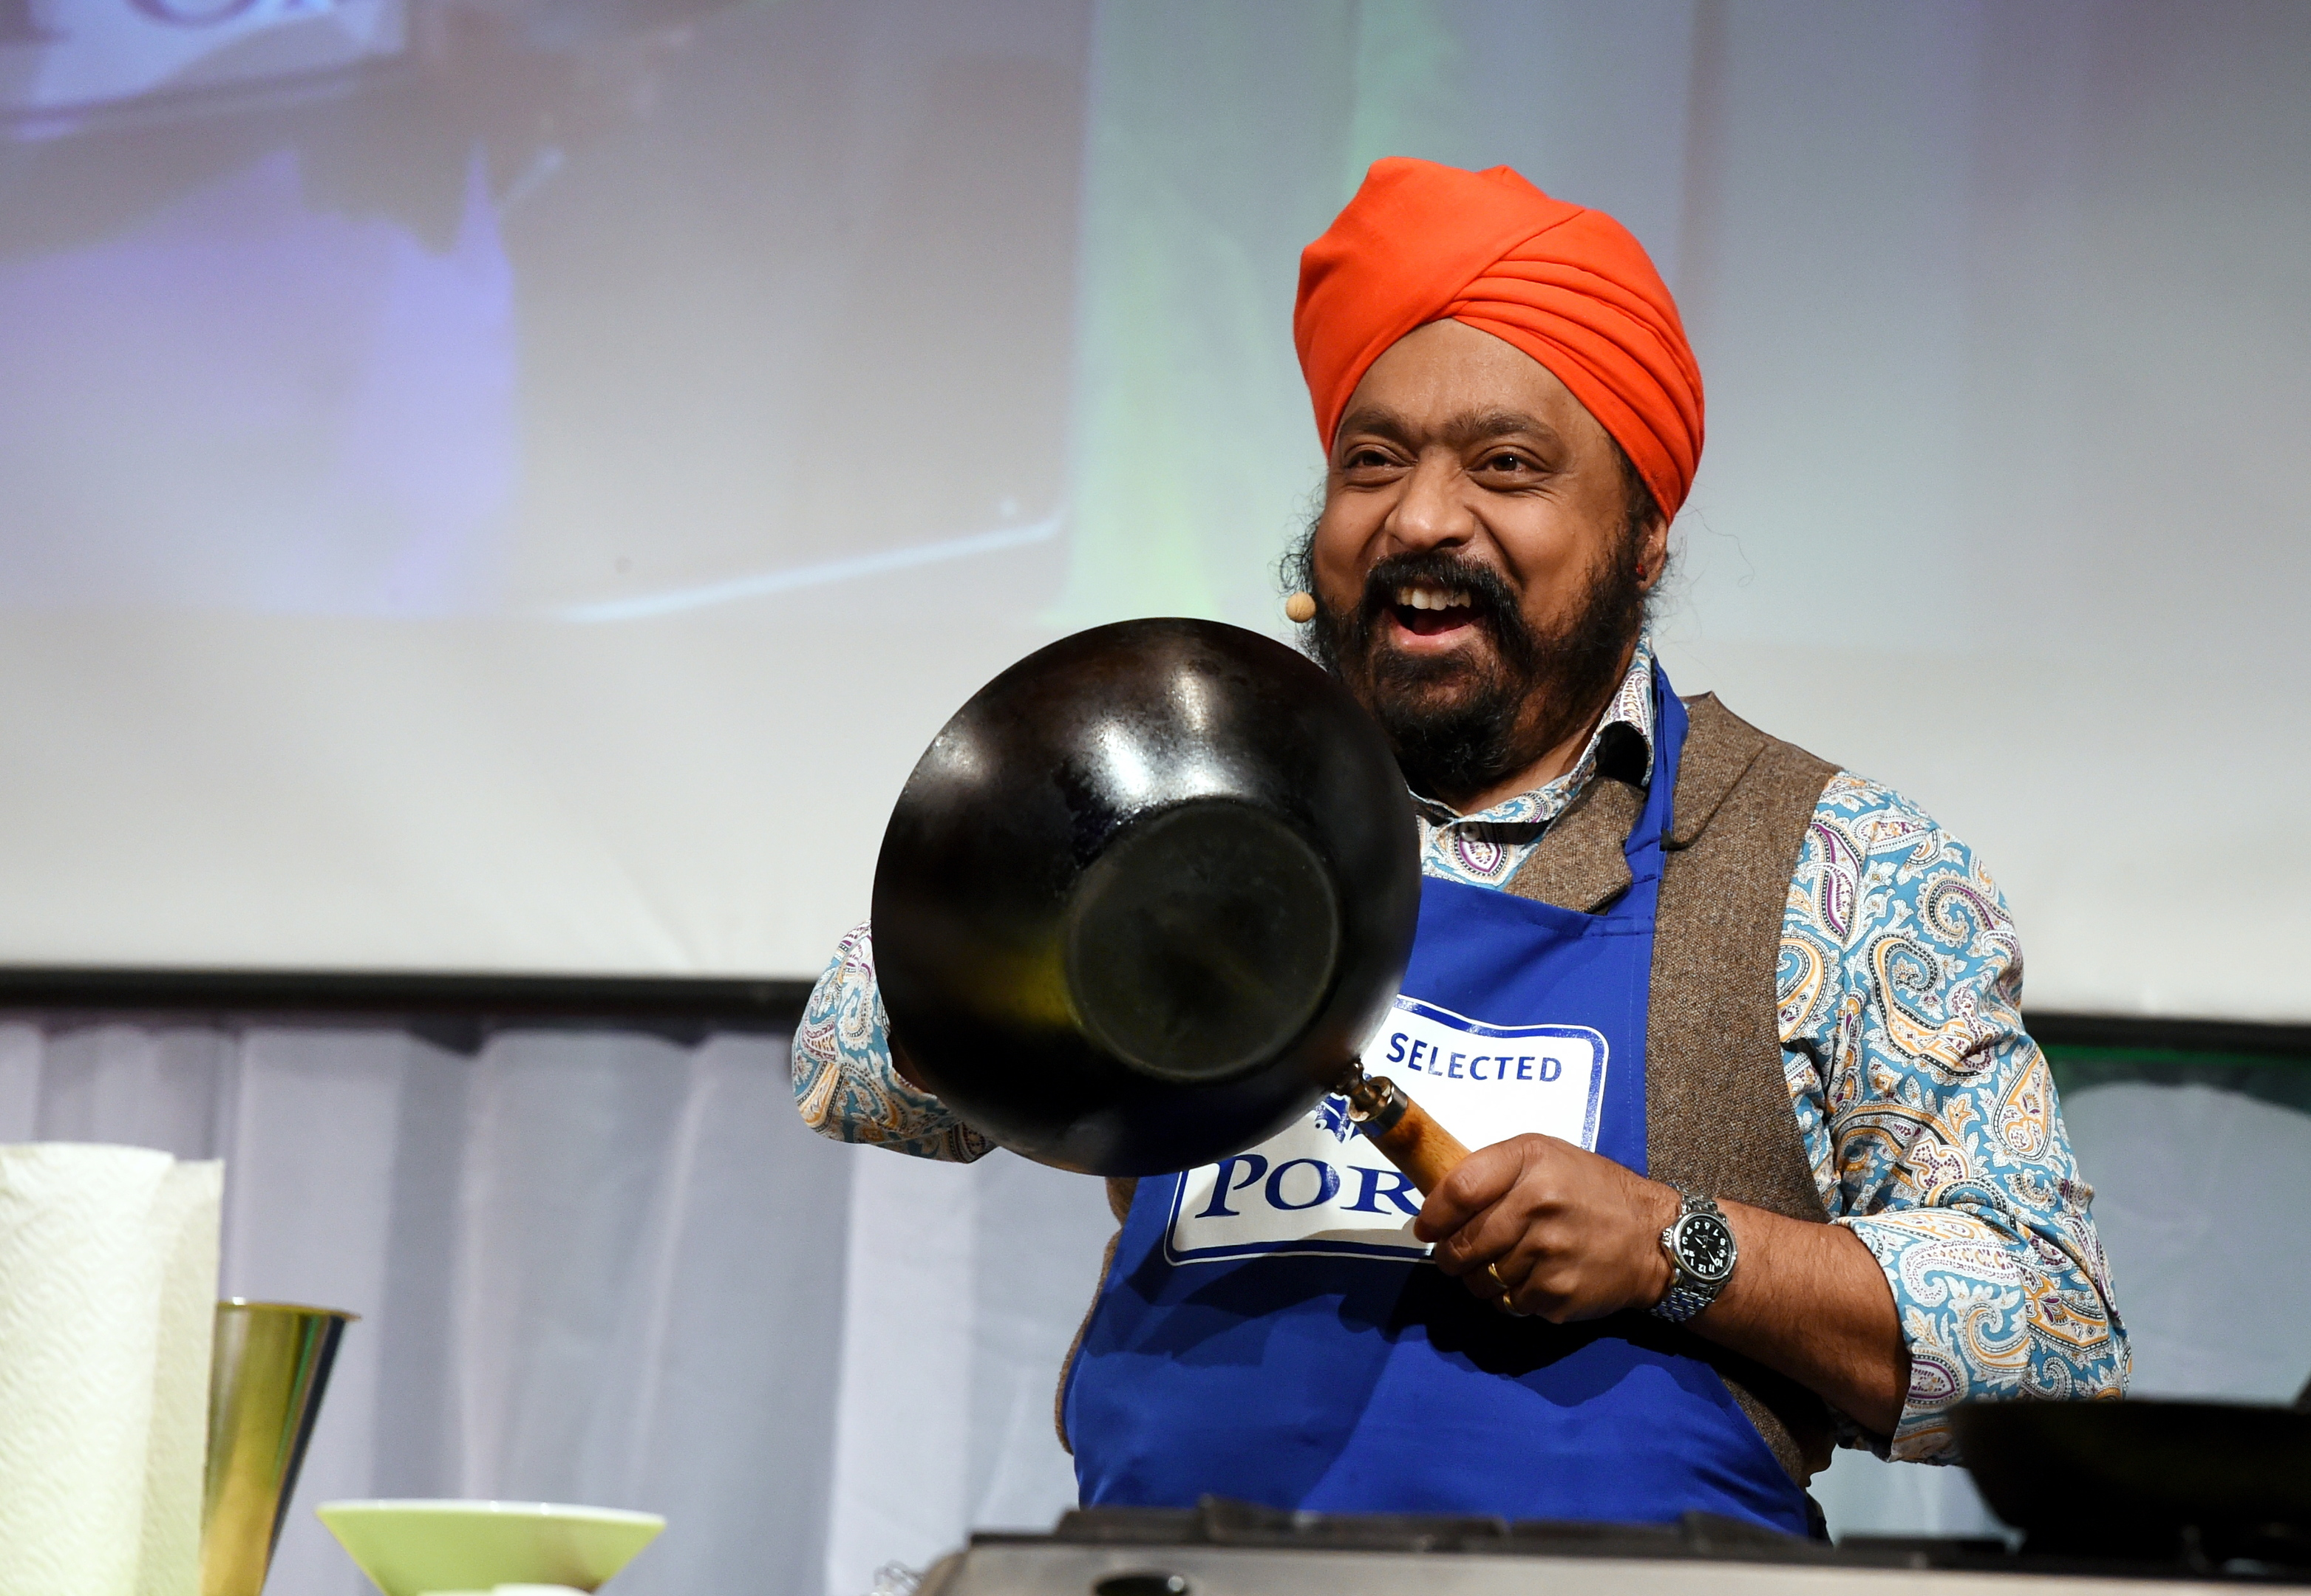 Tony Singh at The Taste of Grampian at Thainstone Centre.